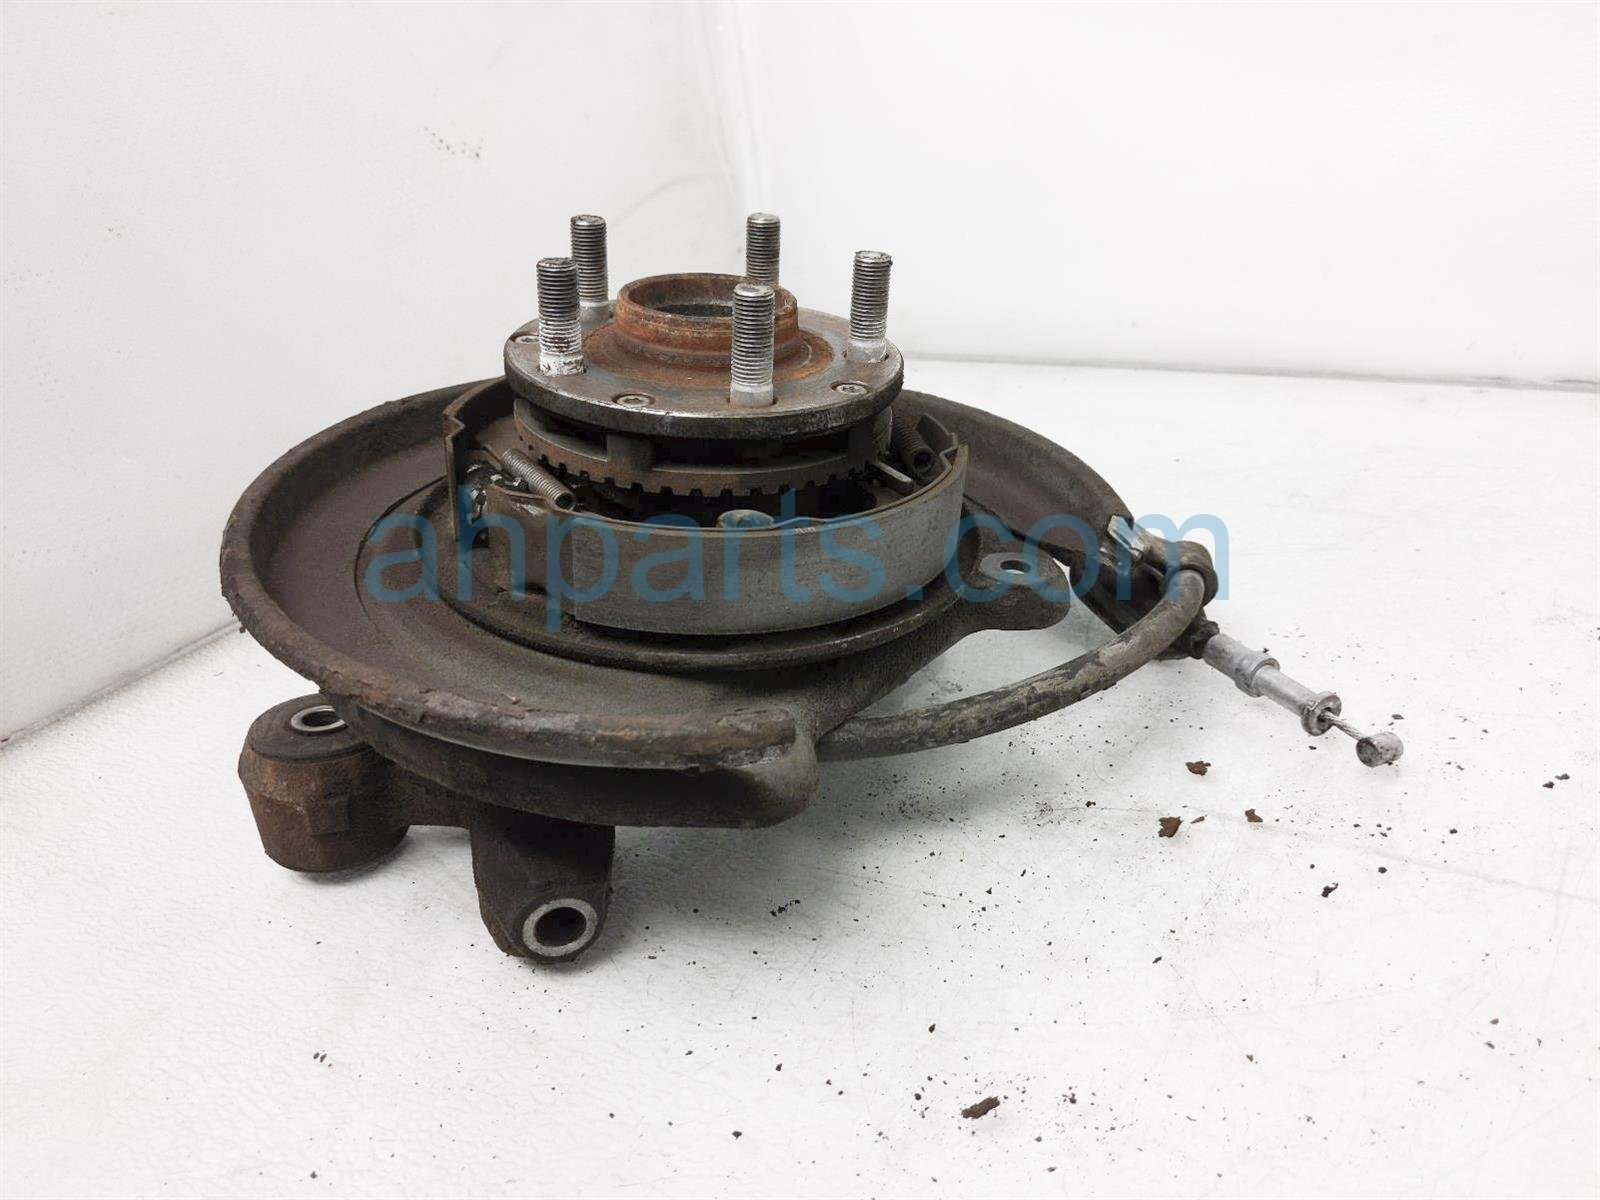 2007 Subaru Impreza Axle Stub Rear Driver Spindle Knuckle Hub 28411FA010 Replacement